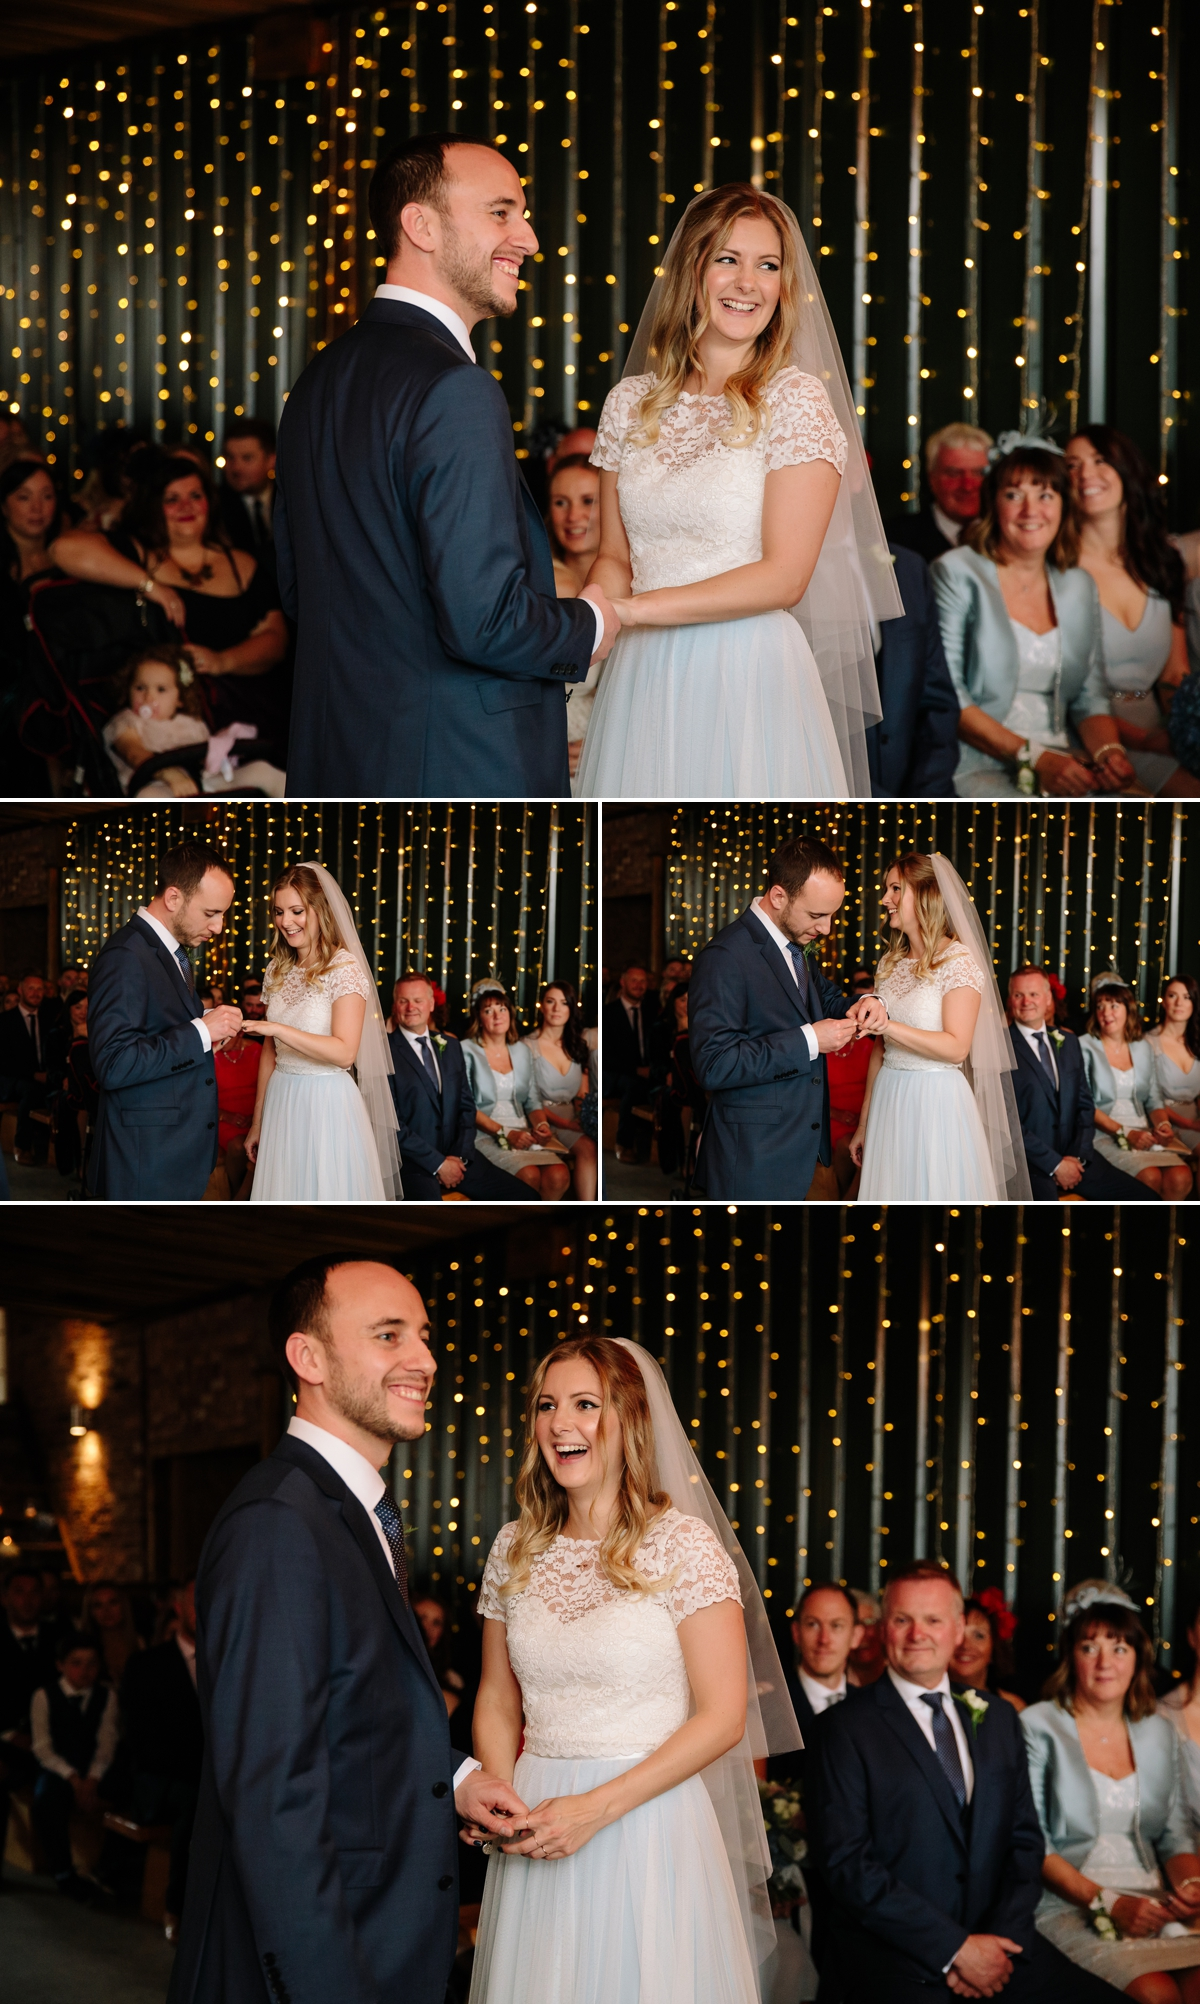 The wedding vows and ring exchange